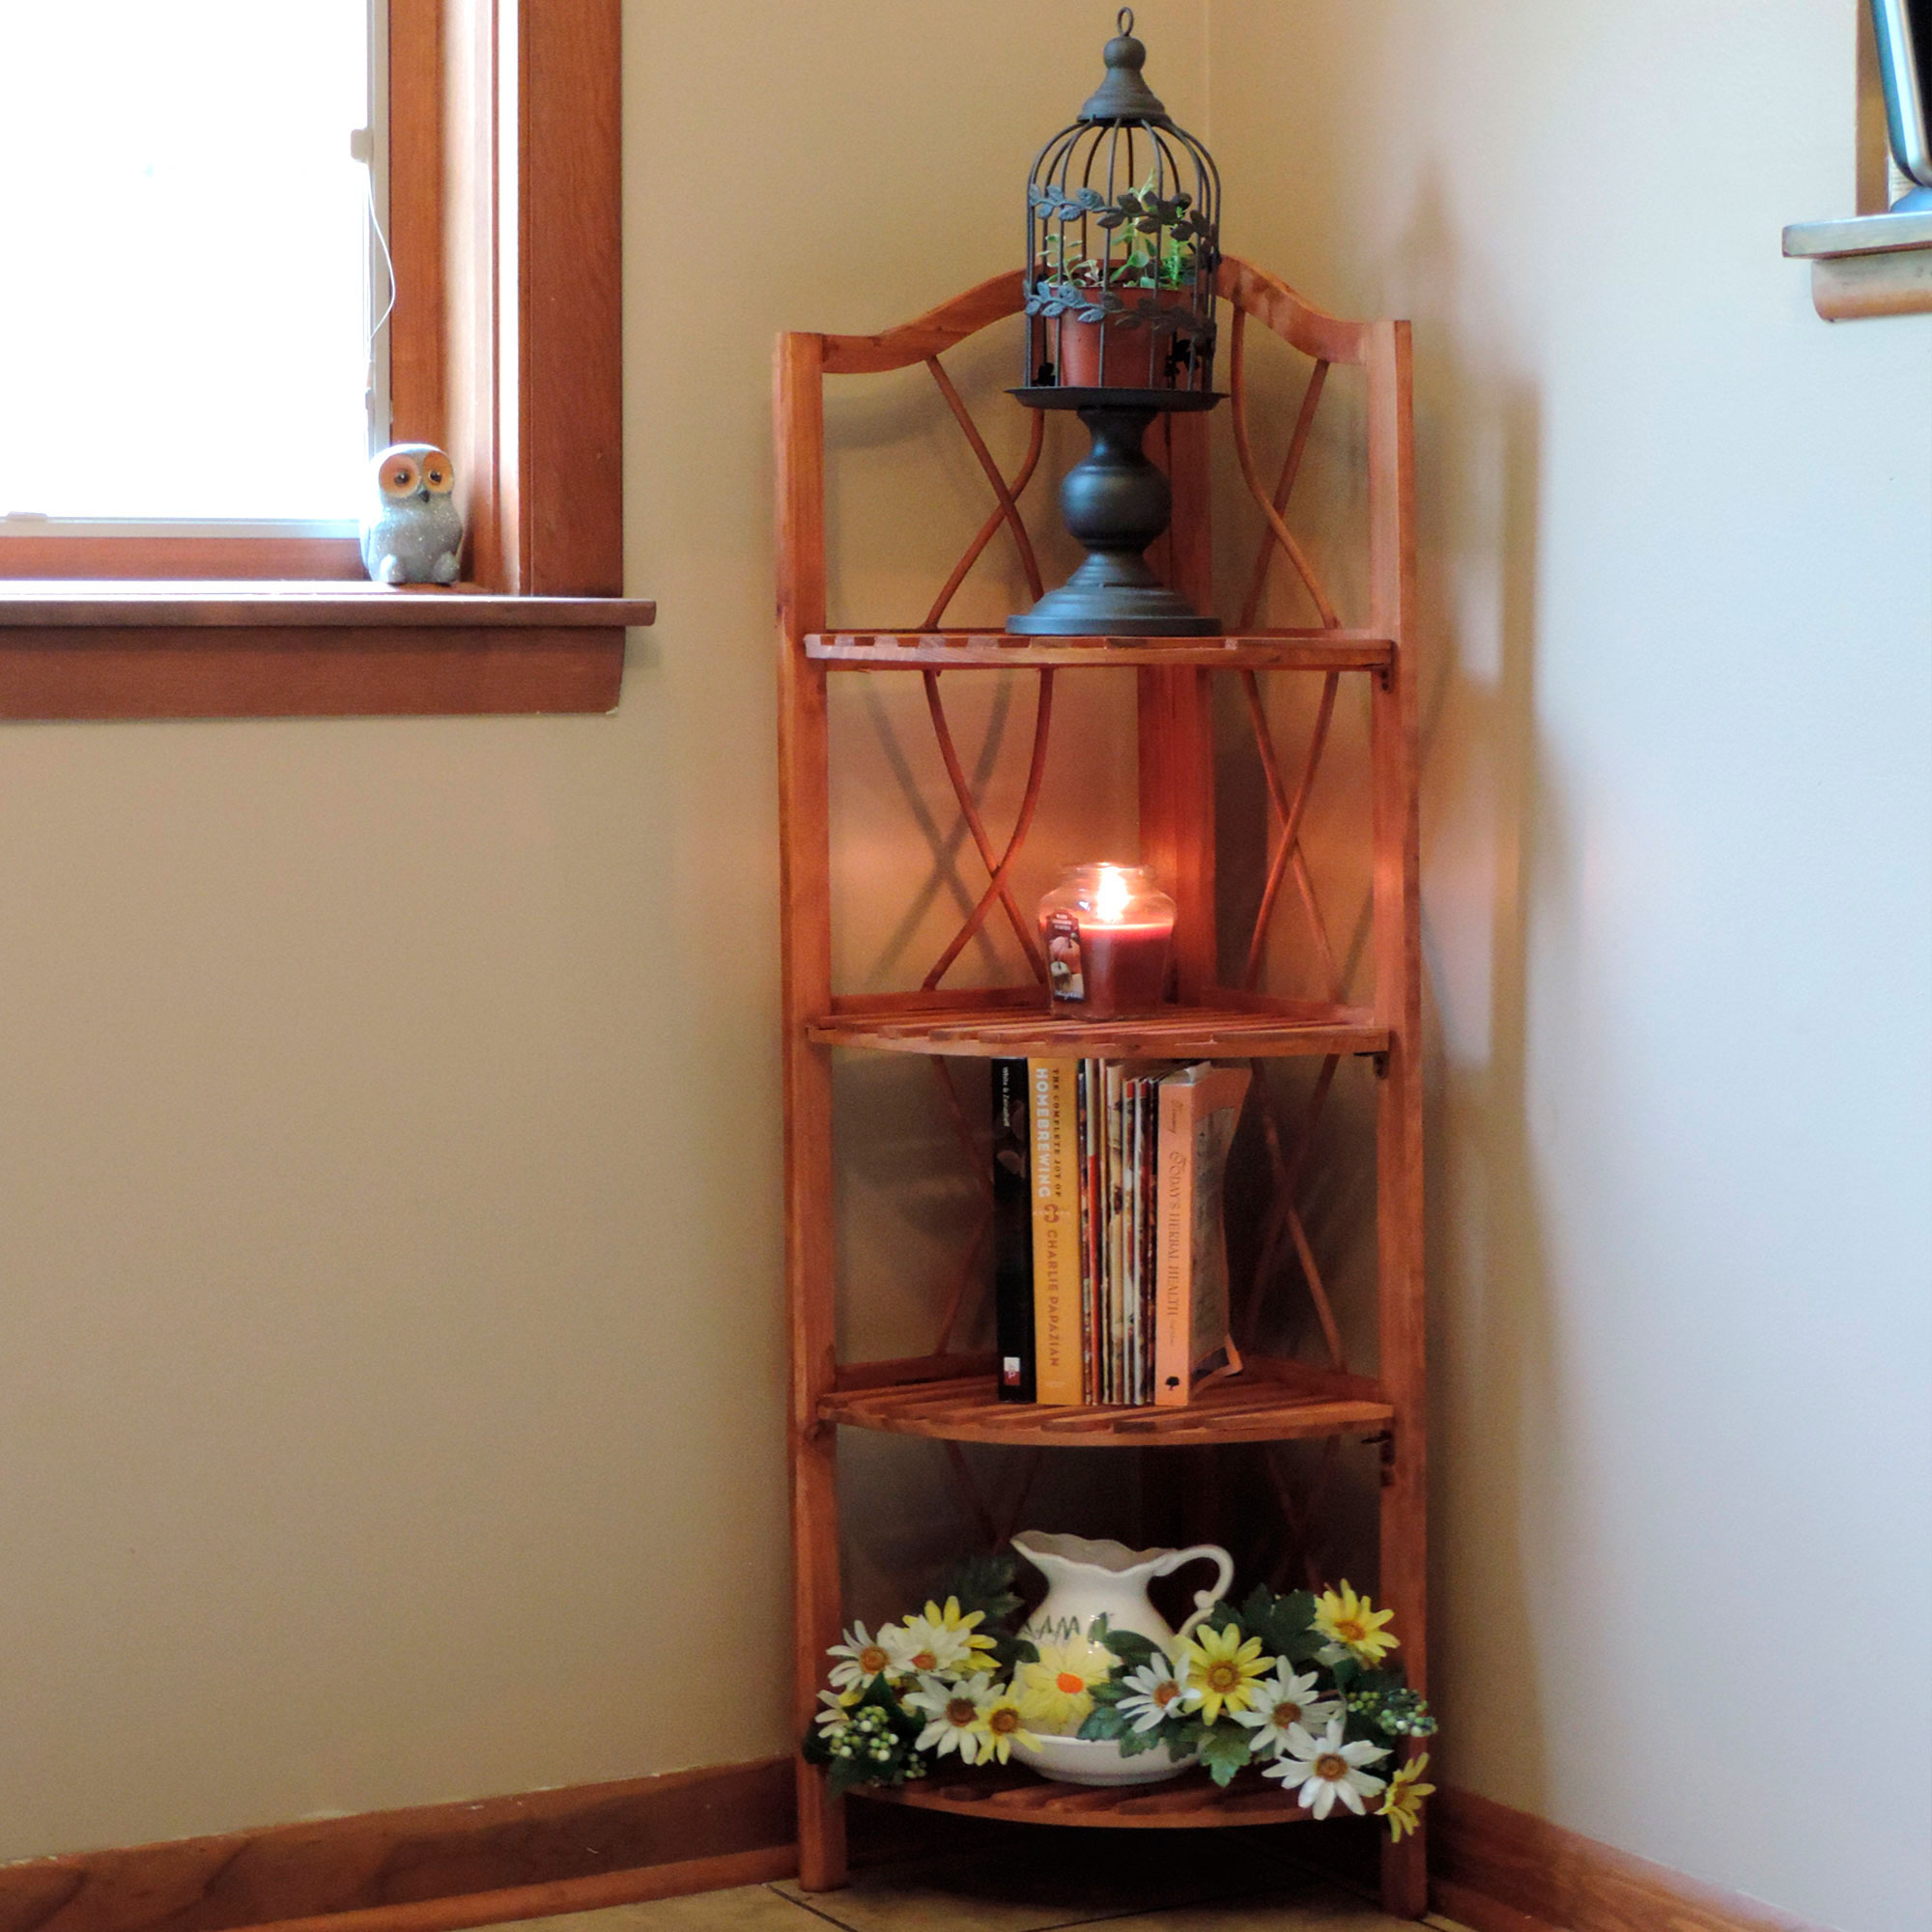 4 Tier Wood Folding Corner Display Shelf by Lavish Home